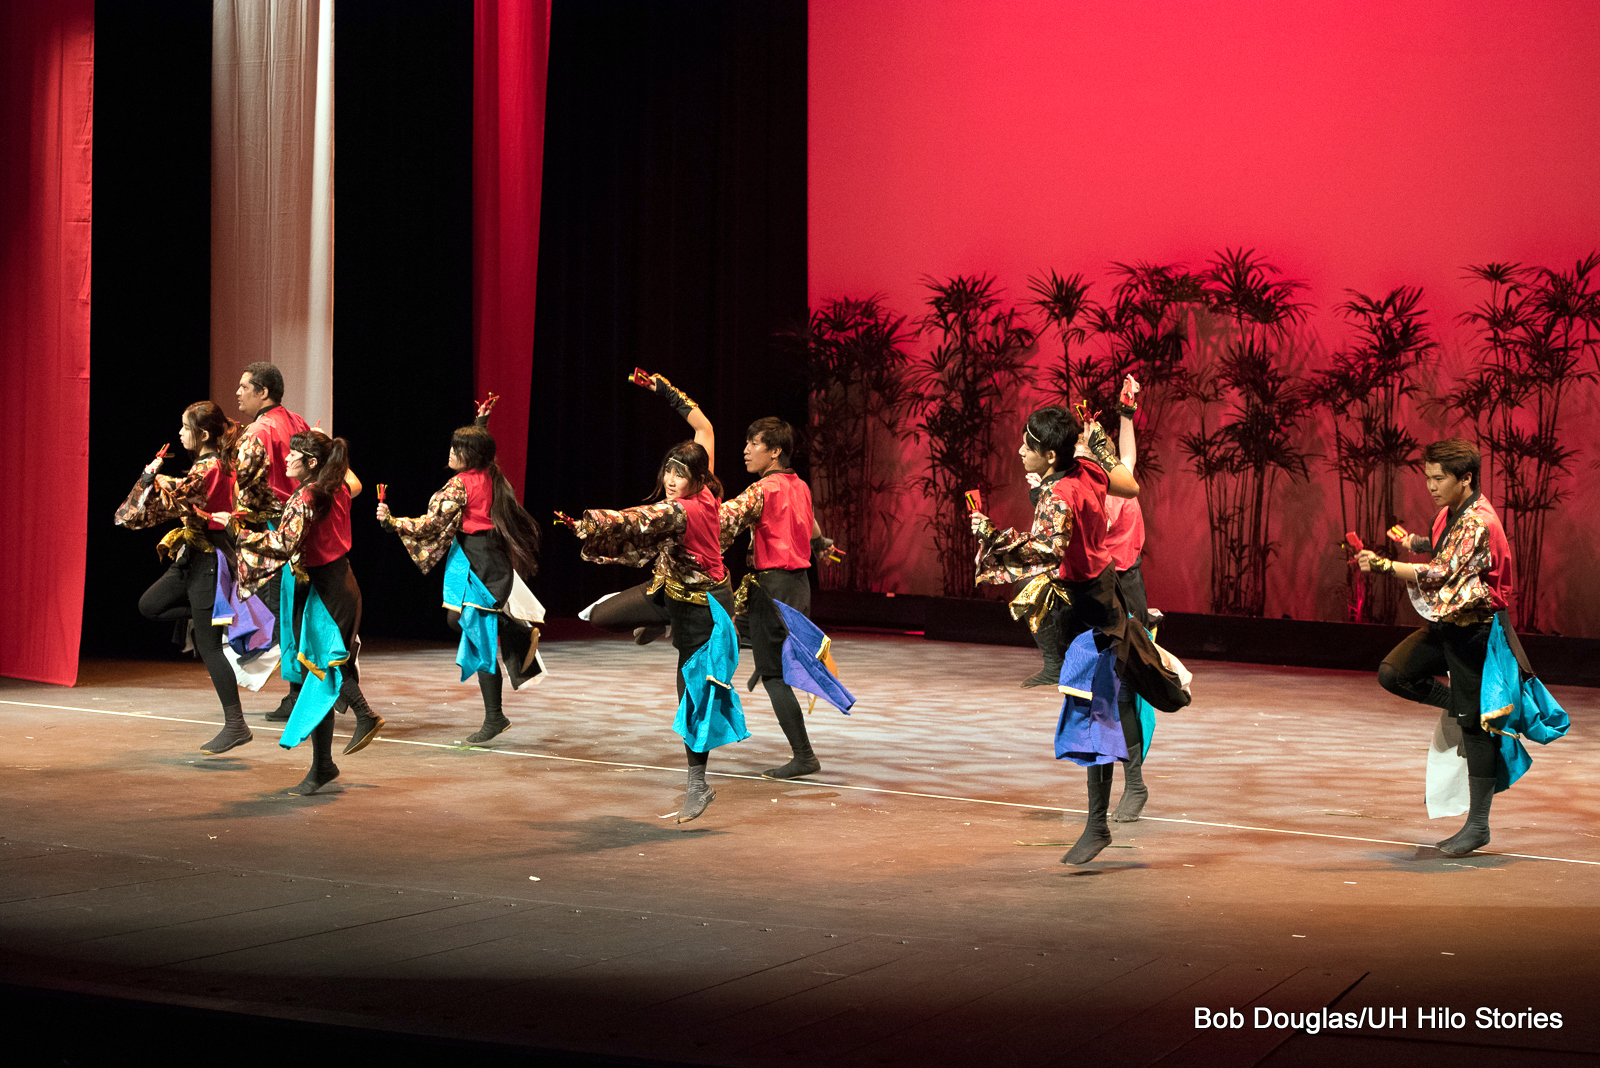 Group of women and men, black and red costumes, dancing.